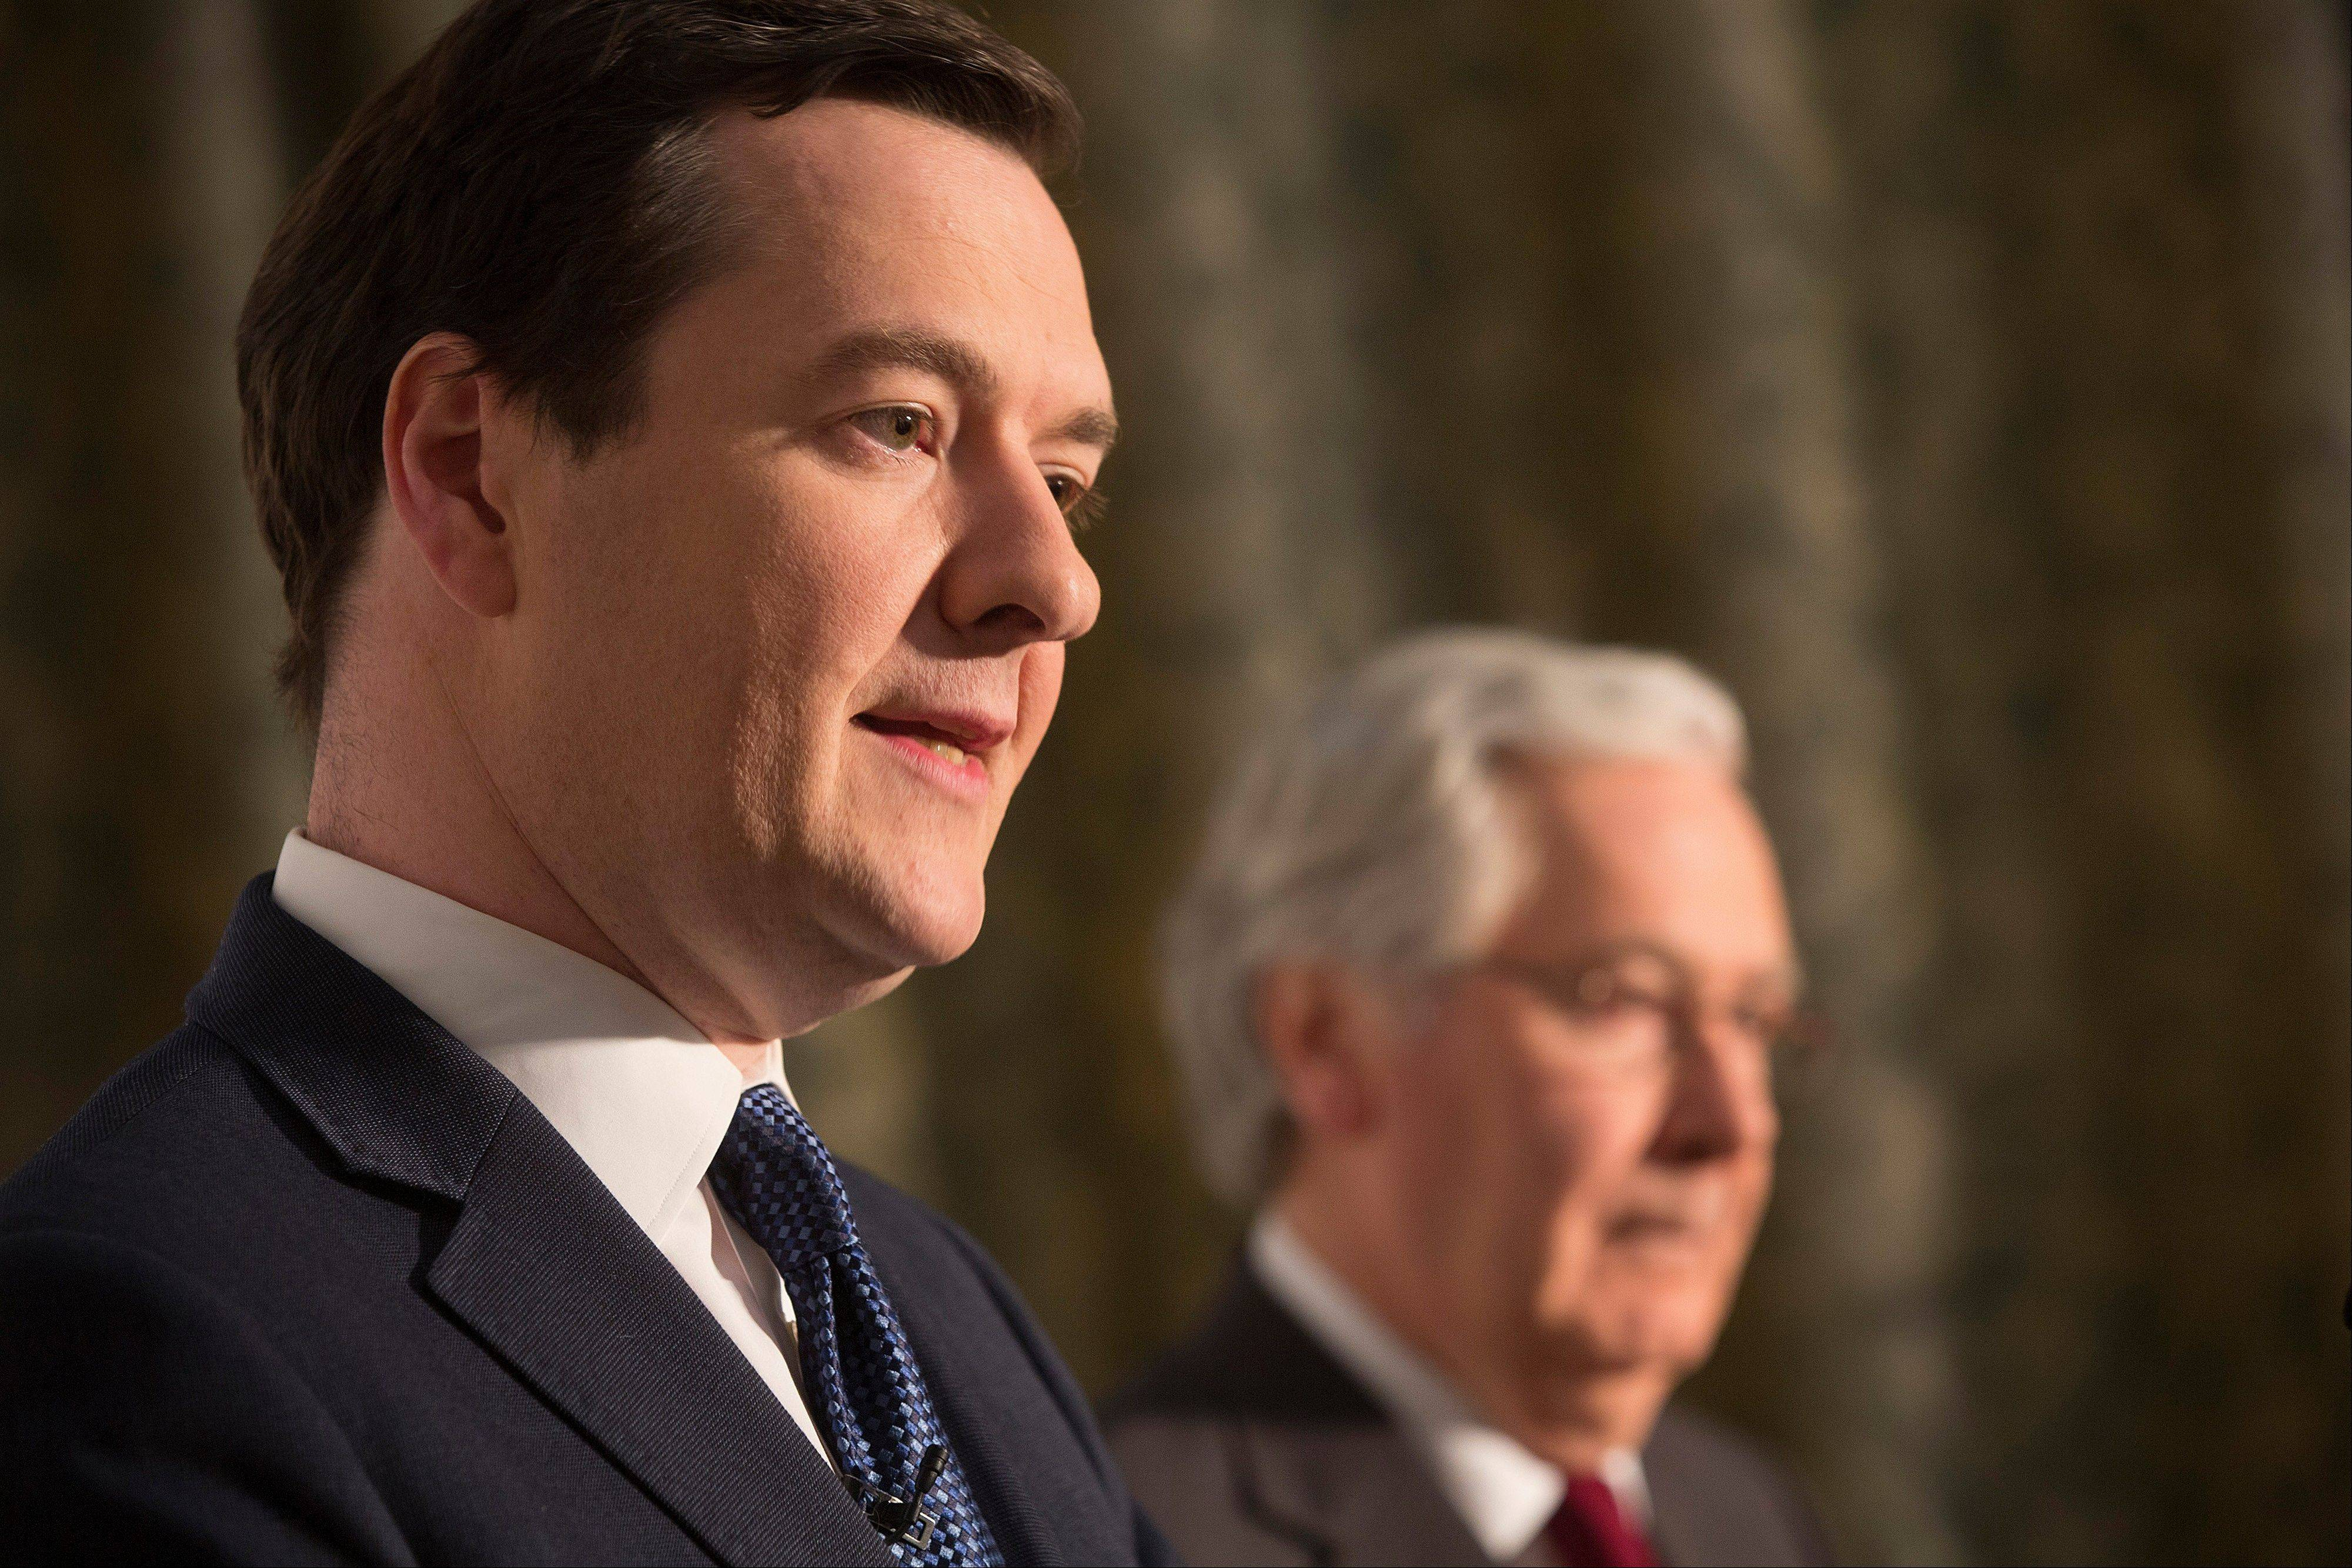 Mervyn King, governor of the Bank of England, right, listens while George Osborne, U.K. chancellor of the exchequer, speaks during a news conference Saturday at the Group of Seven (G-7) finance ministers and central bank governors meeting at Hartwell House in Aylesbury, U.K.